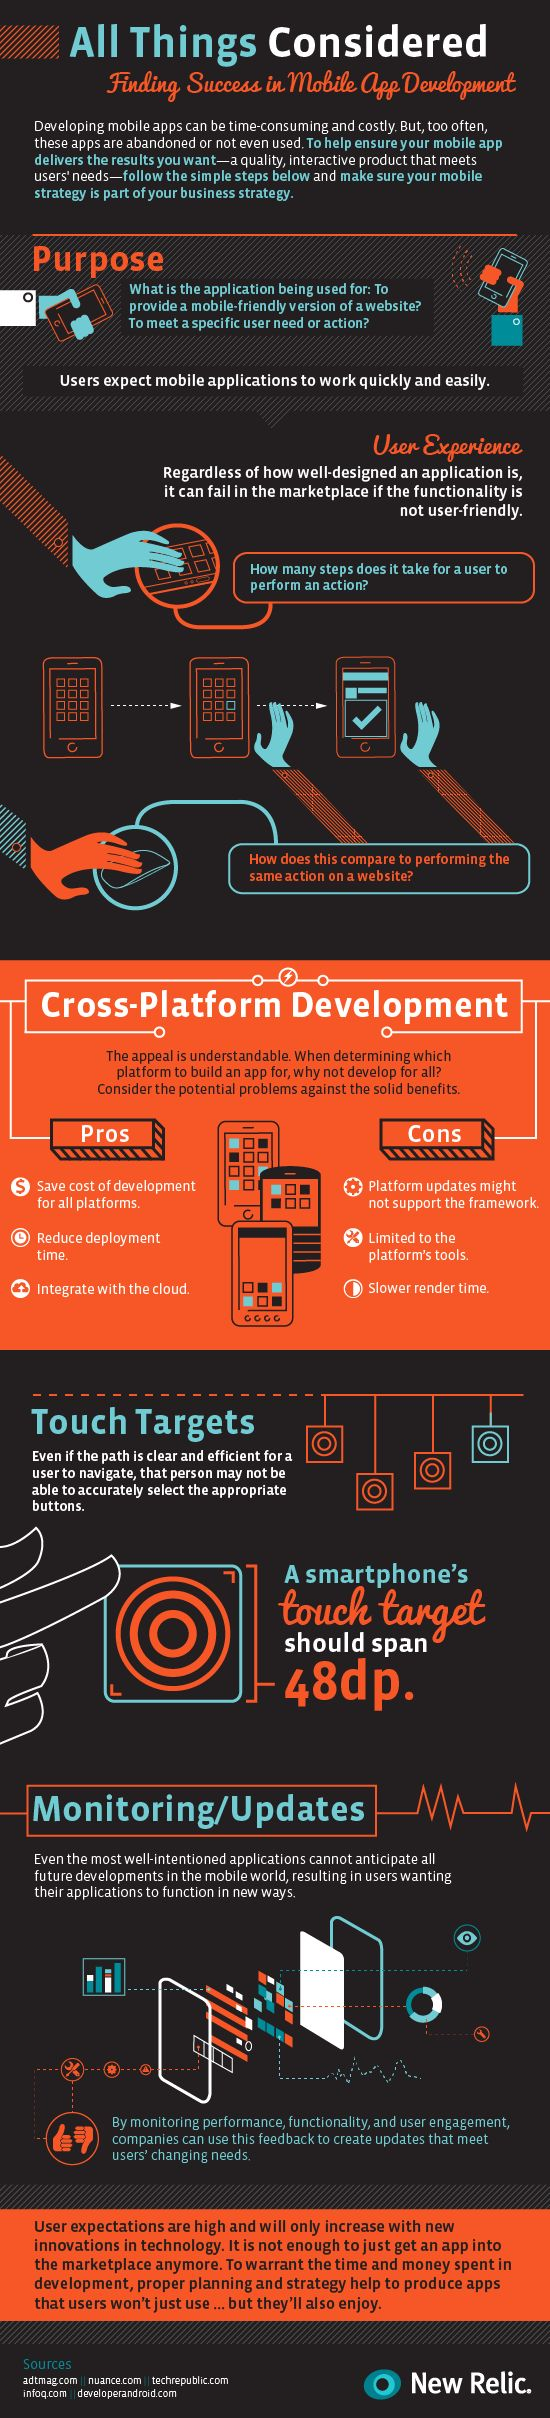 What Do Users Want From Their Mobile Apps And What Is Your Mobile App Strategy? #infographic